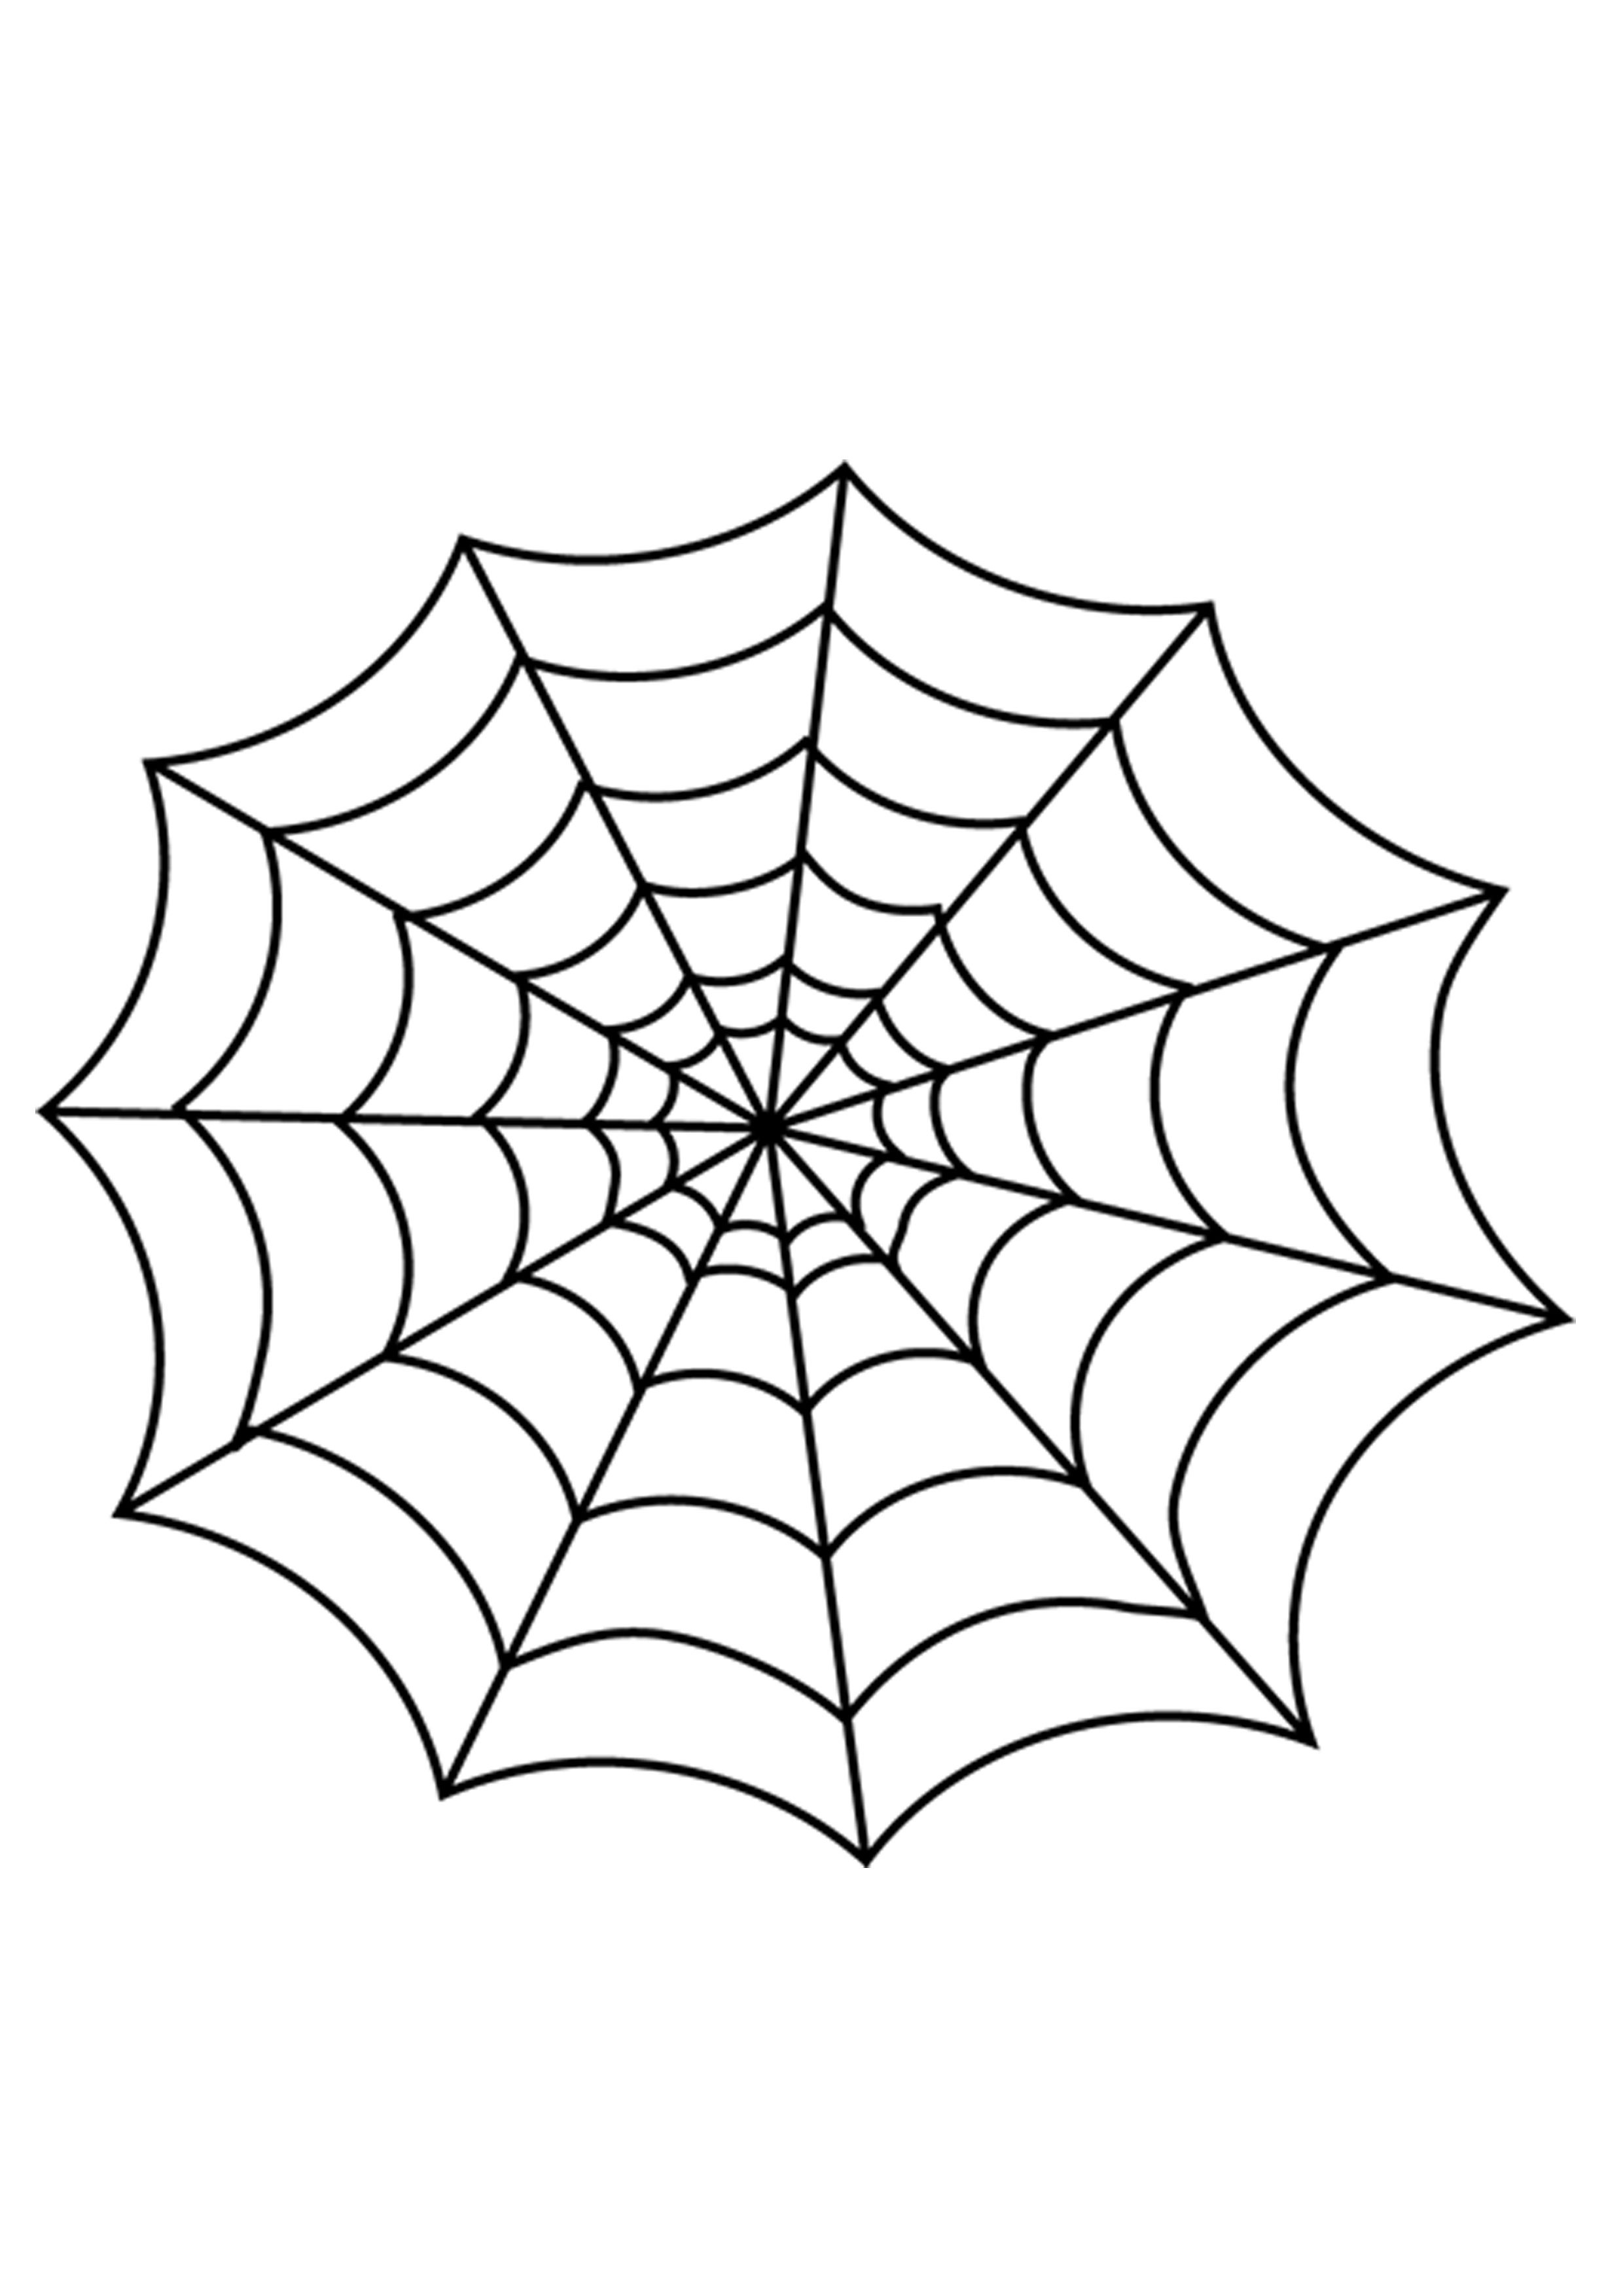 How To Make Glitter Glue Spider Web Halloween Decorations - Spider Web Stencil Free Printable